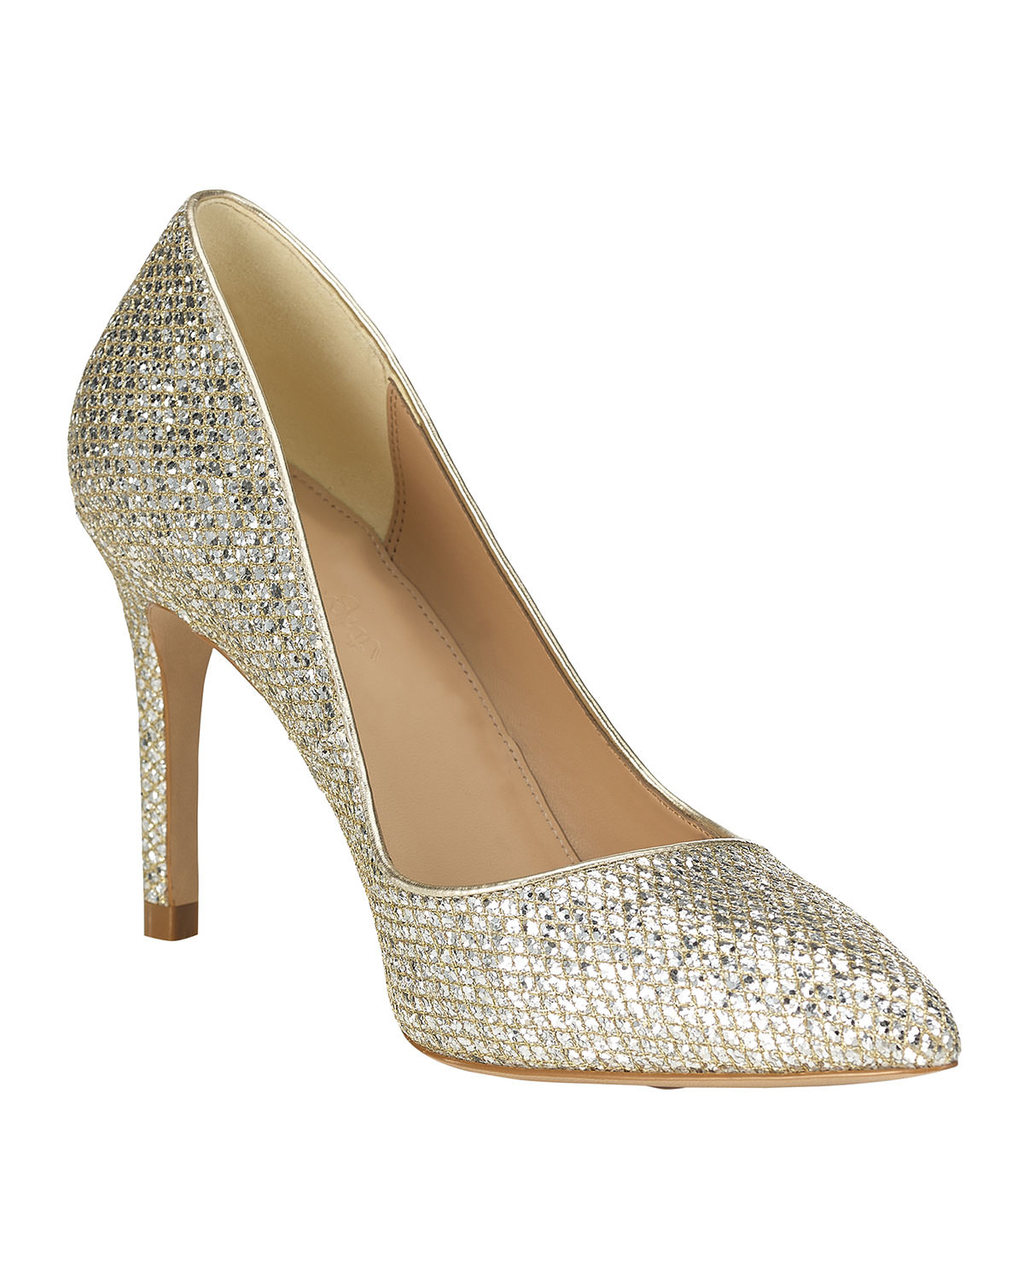 Lucie Glitter Point Heel - predominant colour: silver; occasions: evening, occasion; material: faux leather; heel height: high; embellishment: glitter; heel: stiletto; toe: pointed toe; style: courts; finish: metallic; pattern: plain; season: a/w 2015; wardrobe: event